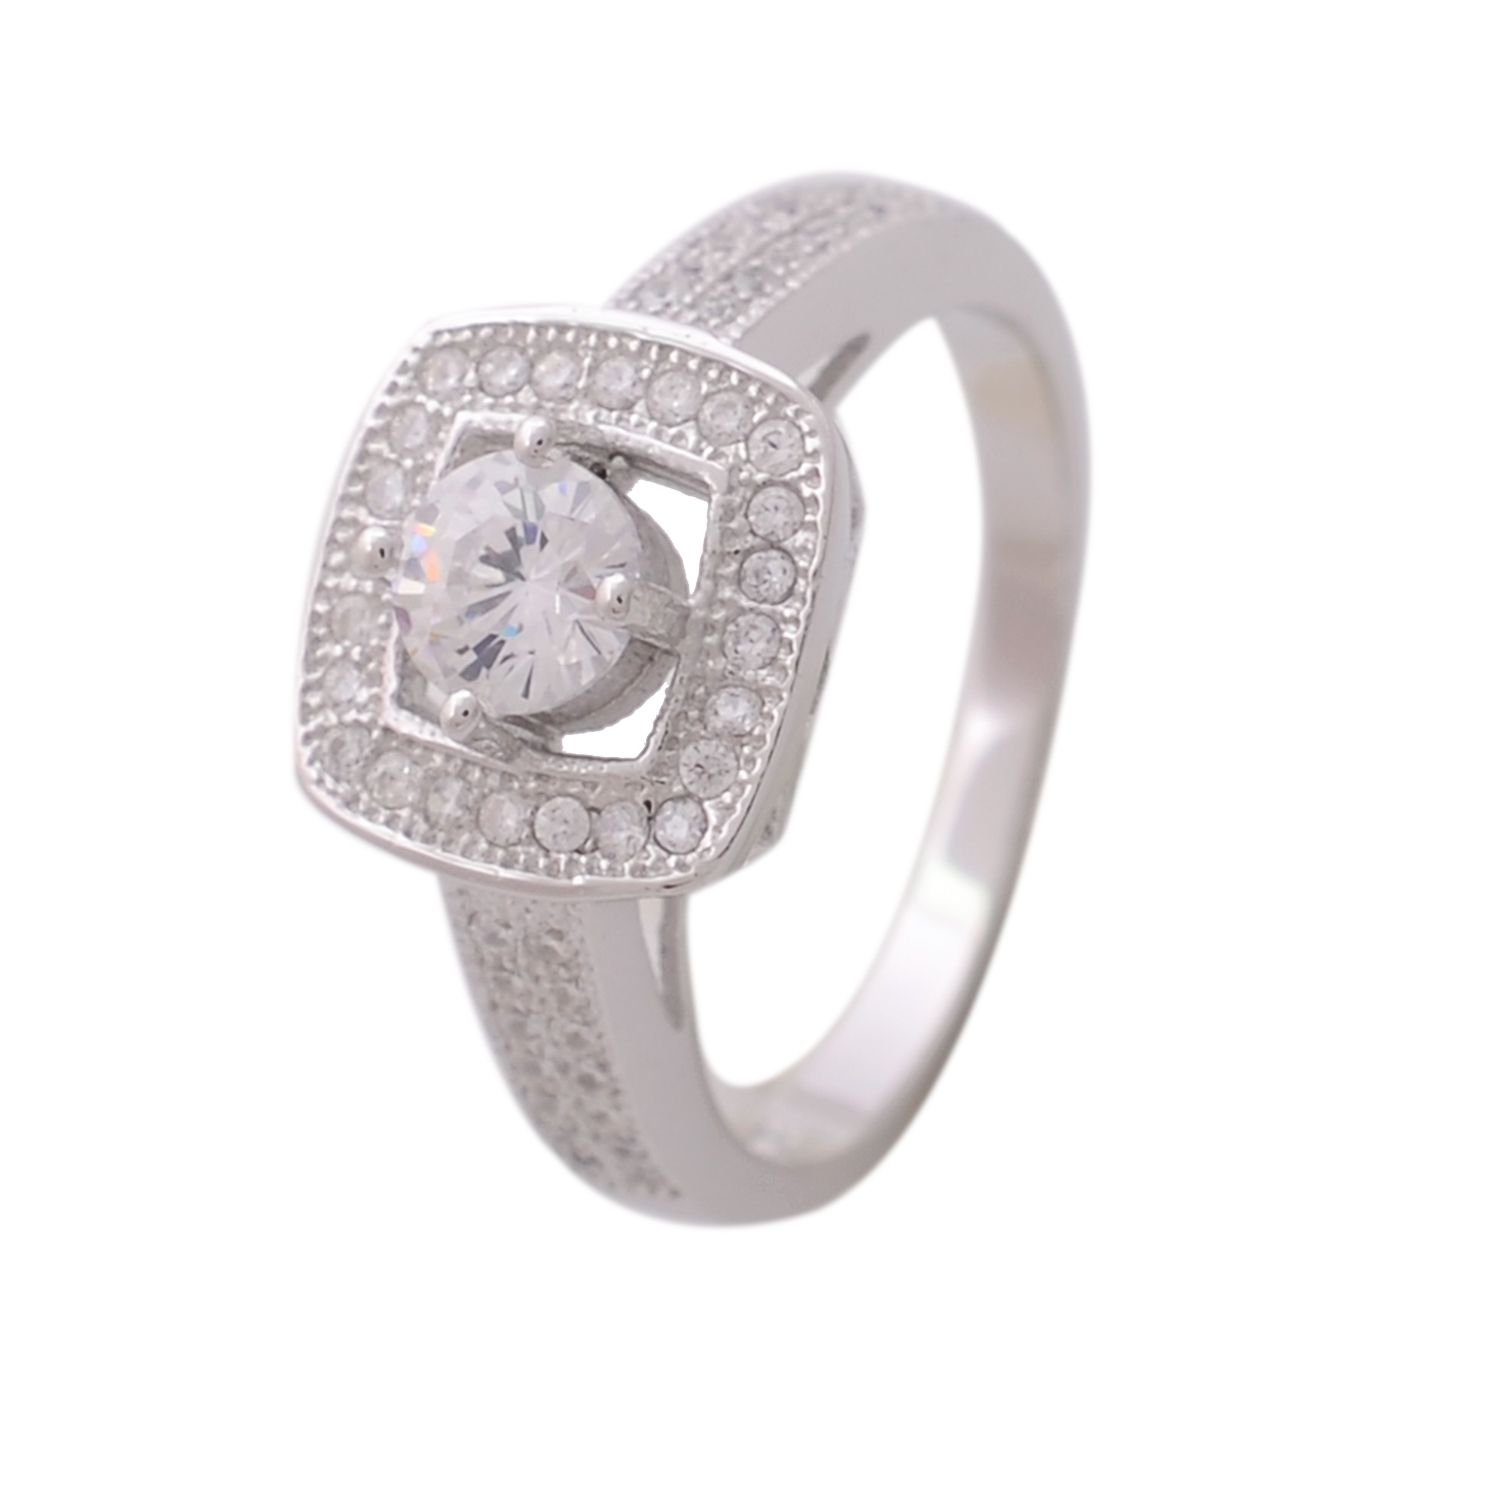 Image for Cubic Zirconia Rings | CZ Rings